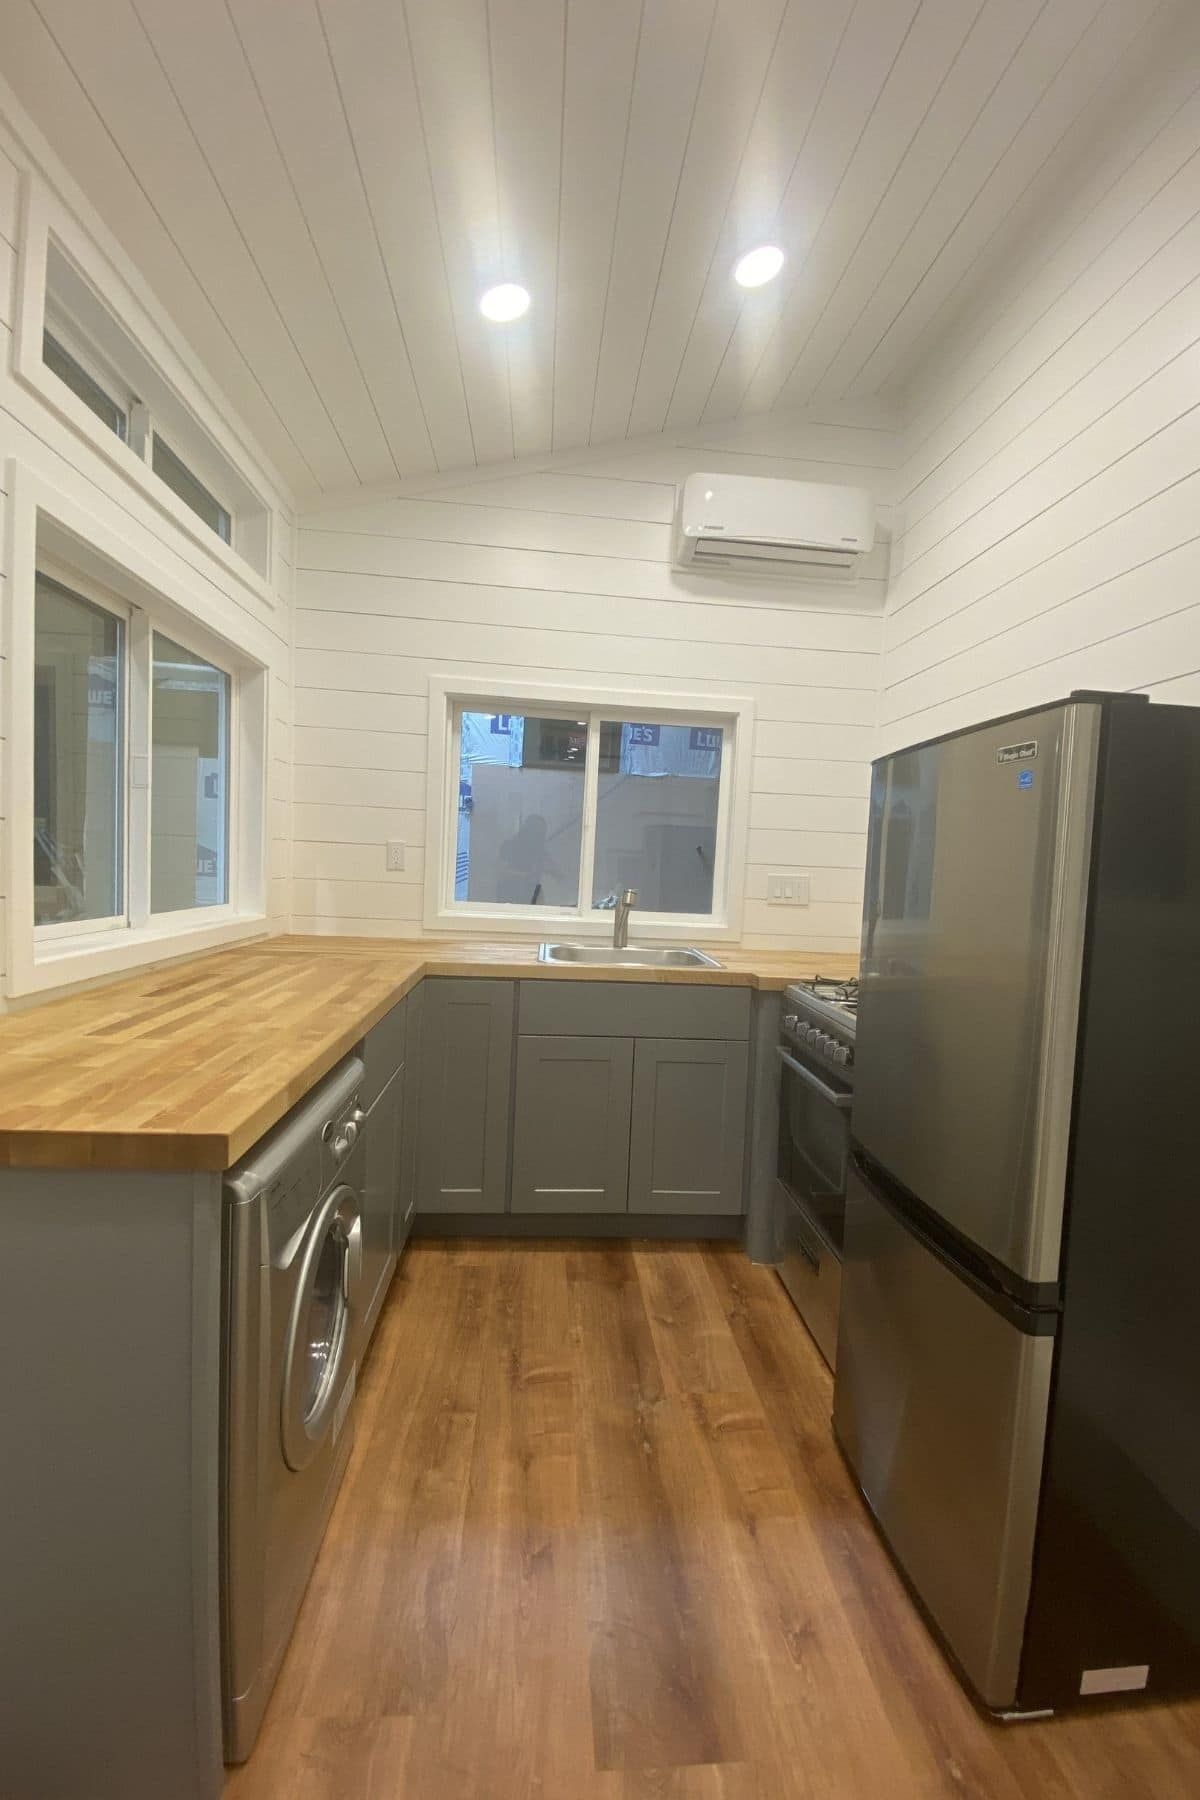 u-shaped kitchen with gray cabinets and stainless steel refrigerator on right